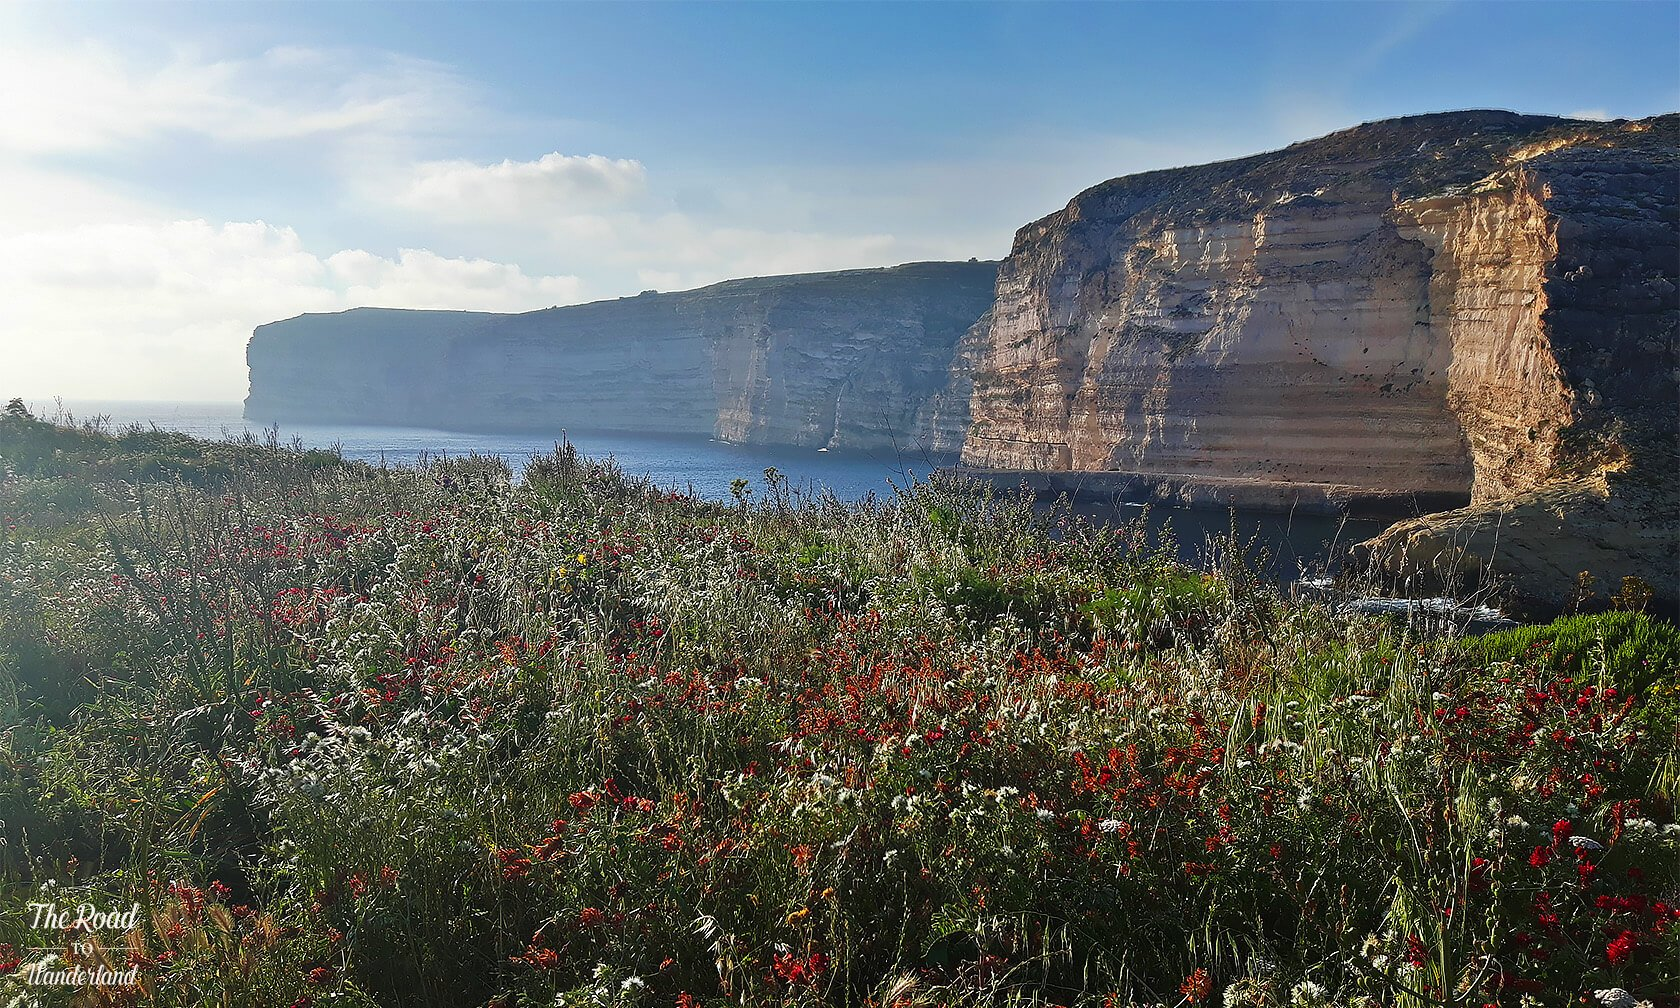 Xlendi cliffs with spring wildflowers